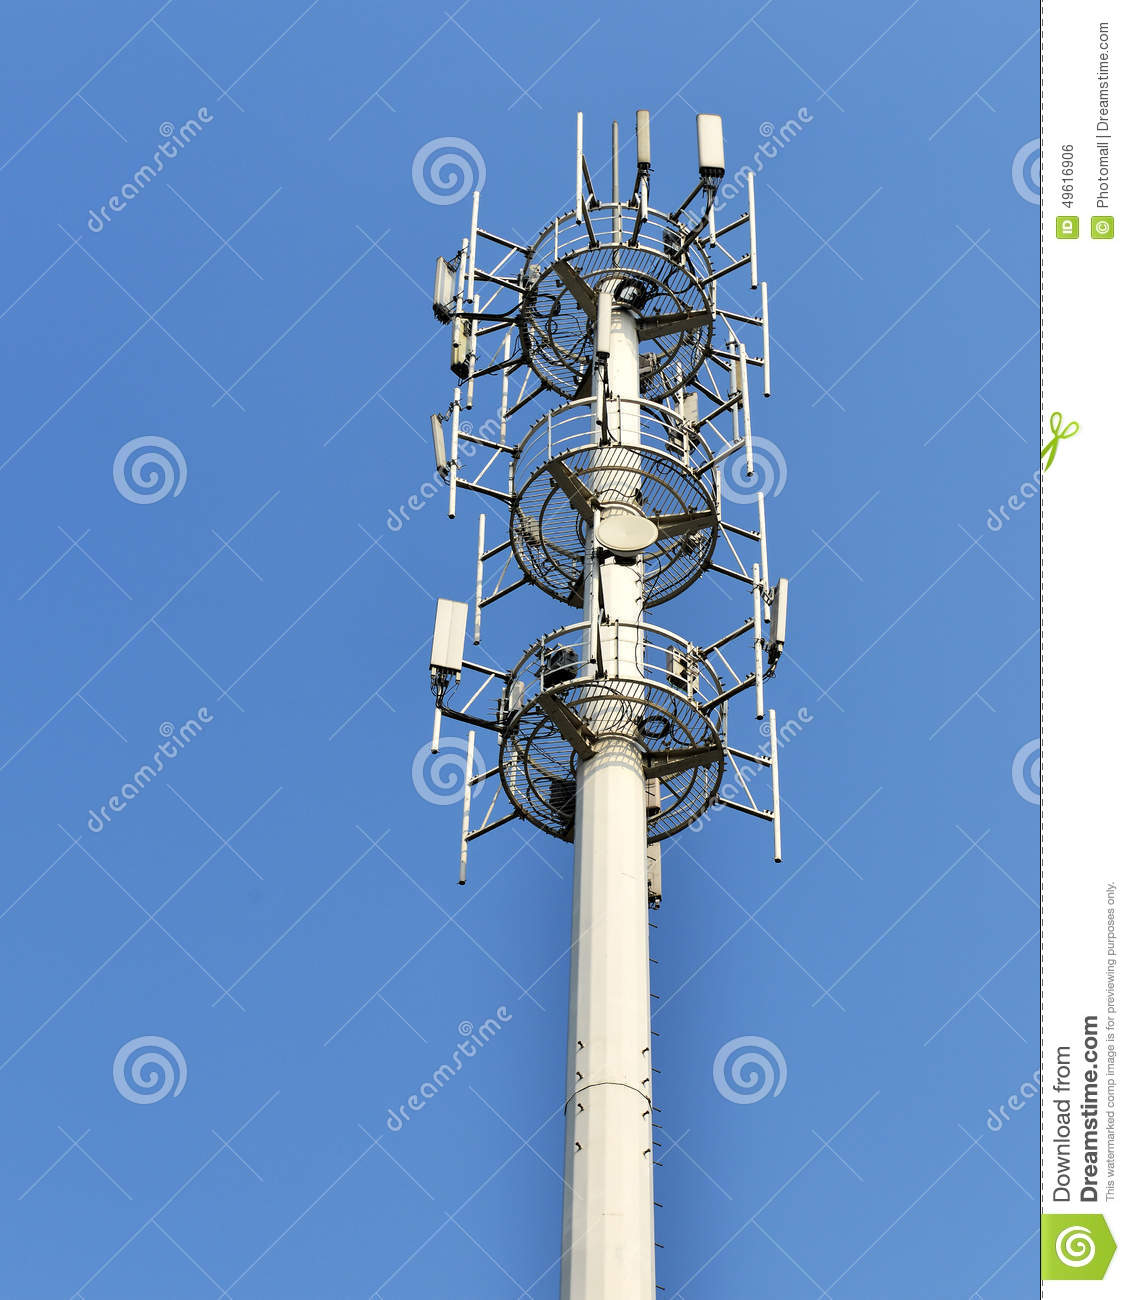 Cell Phone Antenna Tower Stock Photo. Image Of